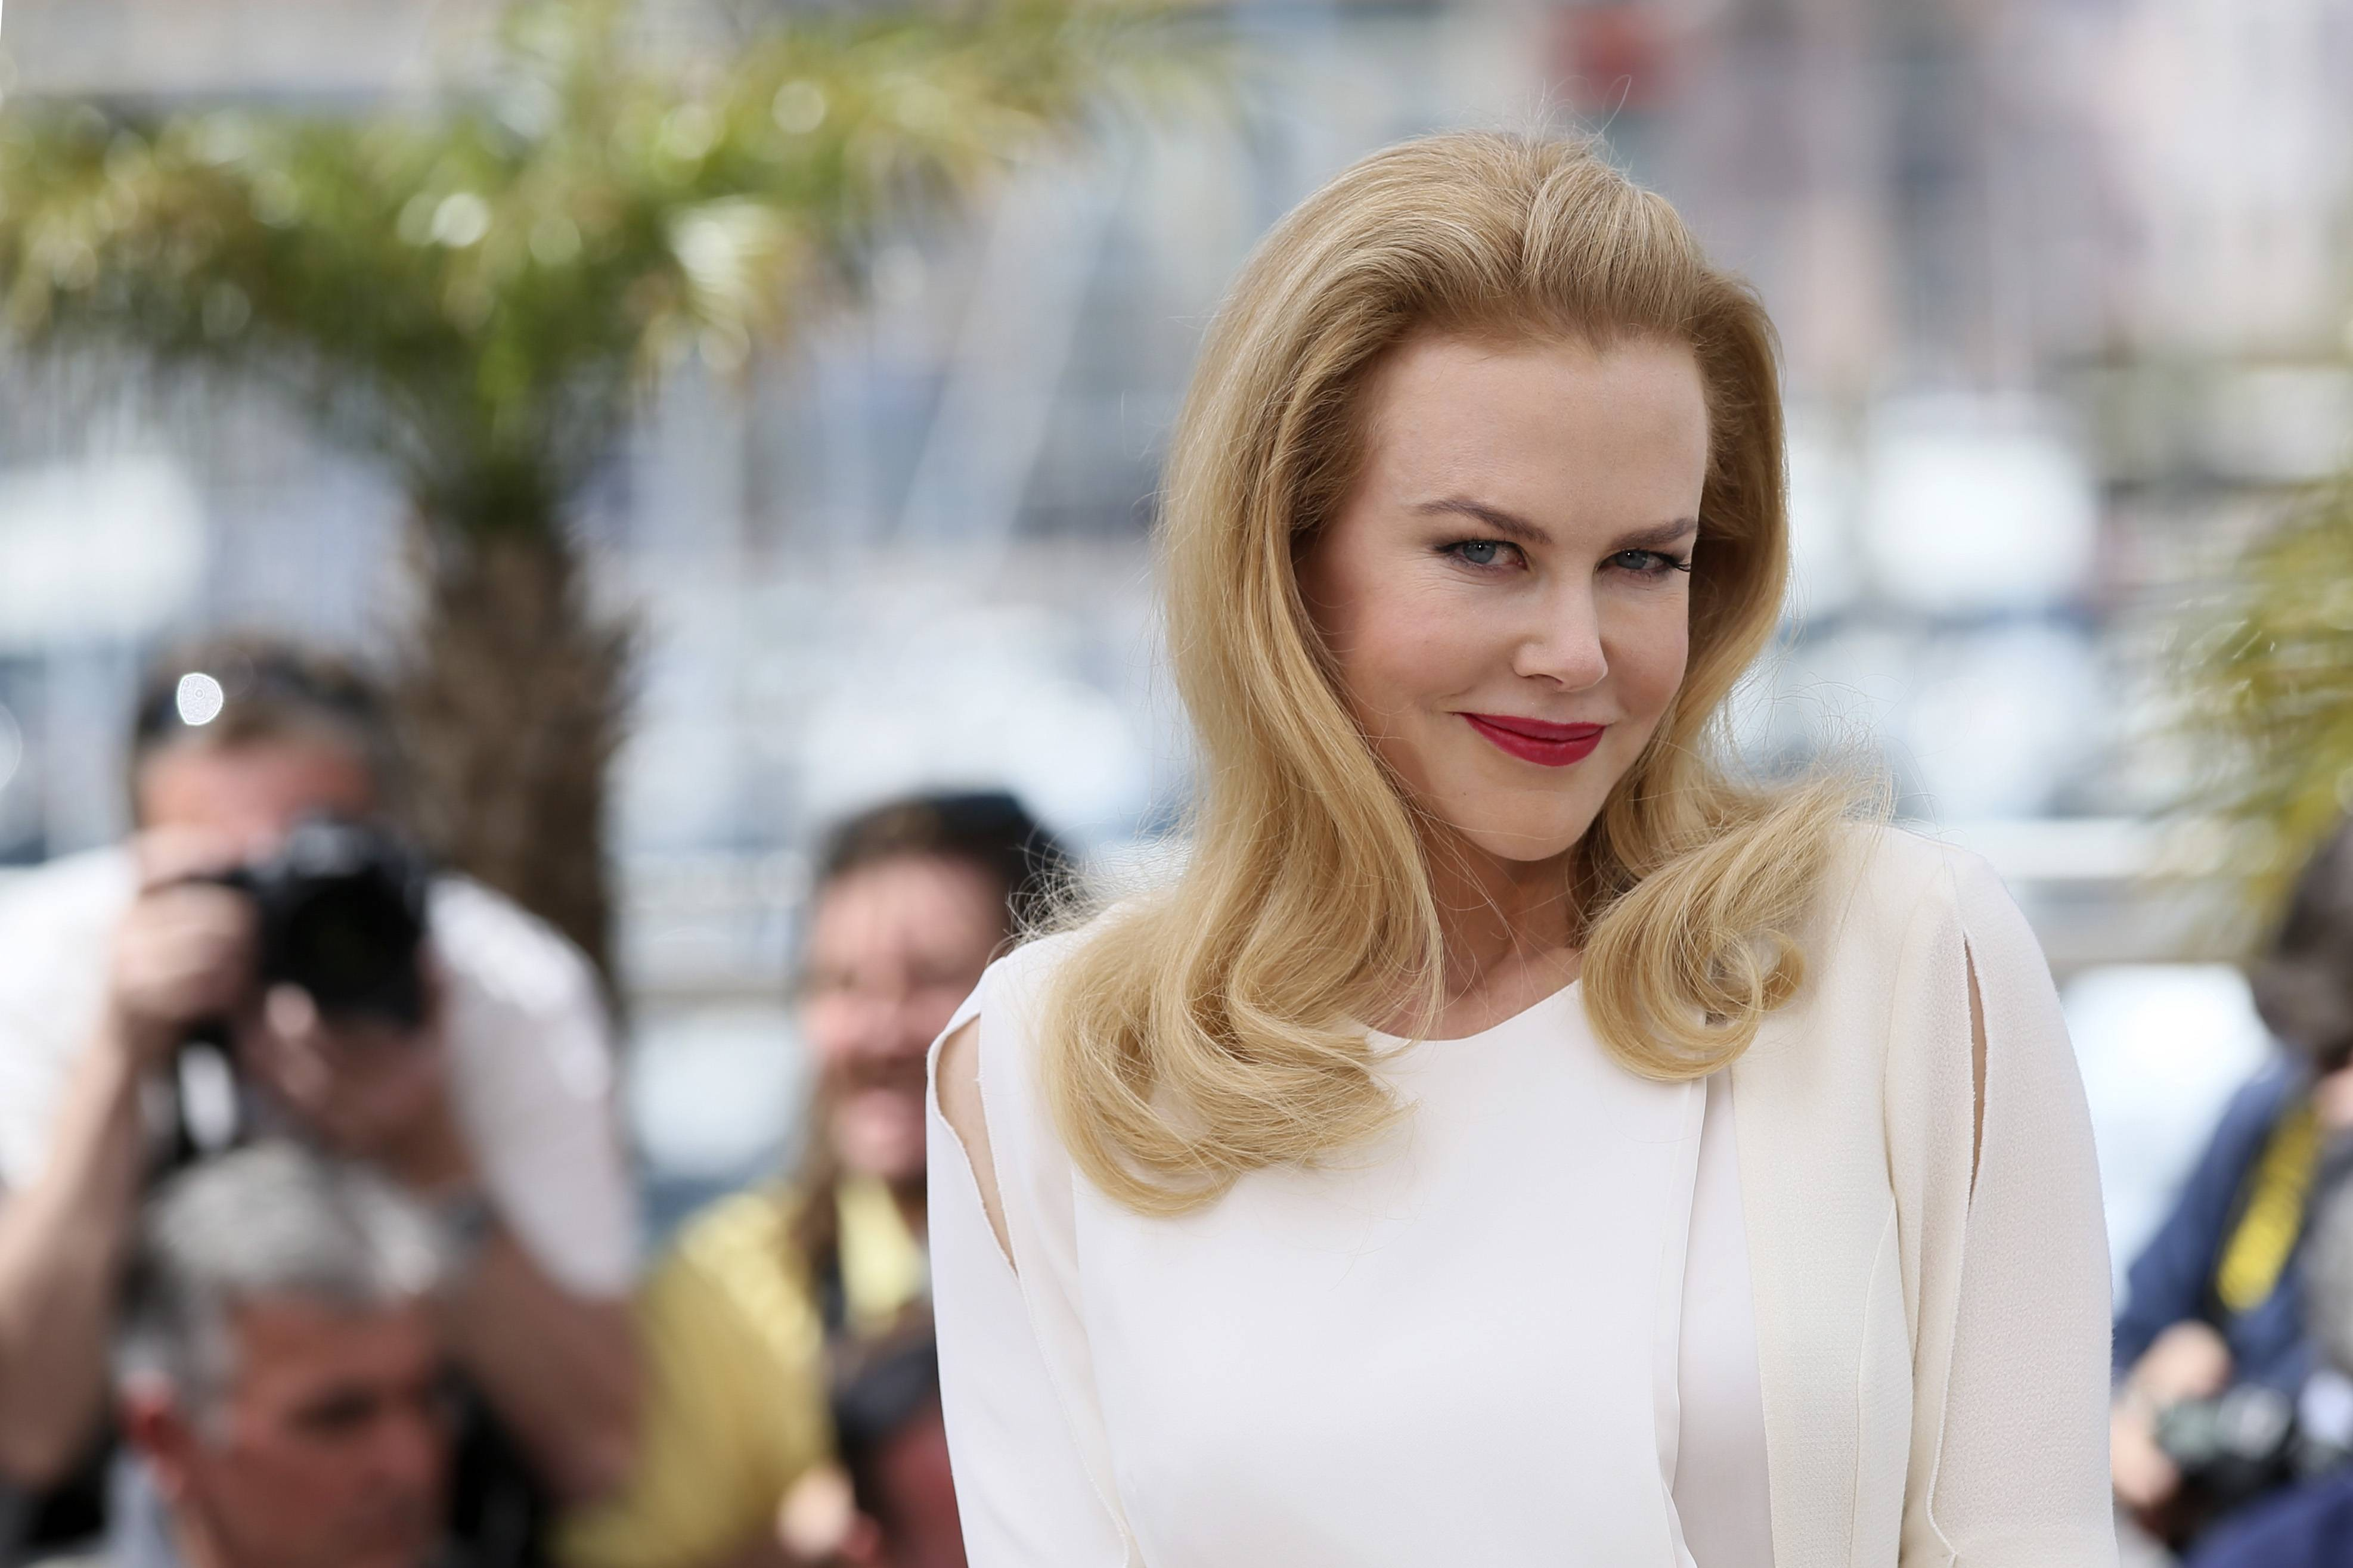 Actress Nicole Kidman poses for photographers during a photo call for Grace of Monaco at the 67th Cannes Film Festival in southern France on Wednesday.